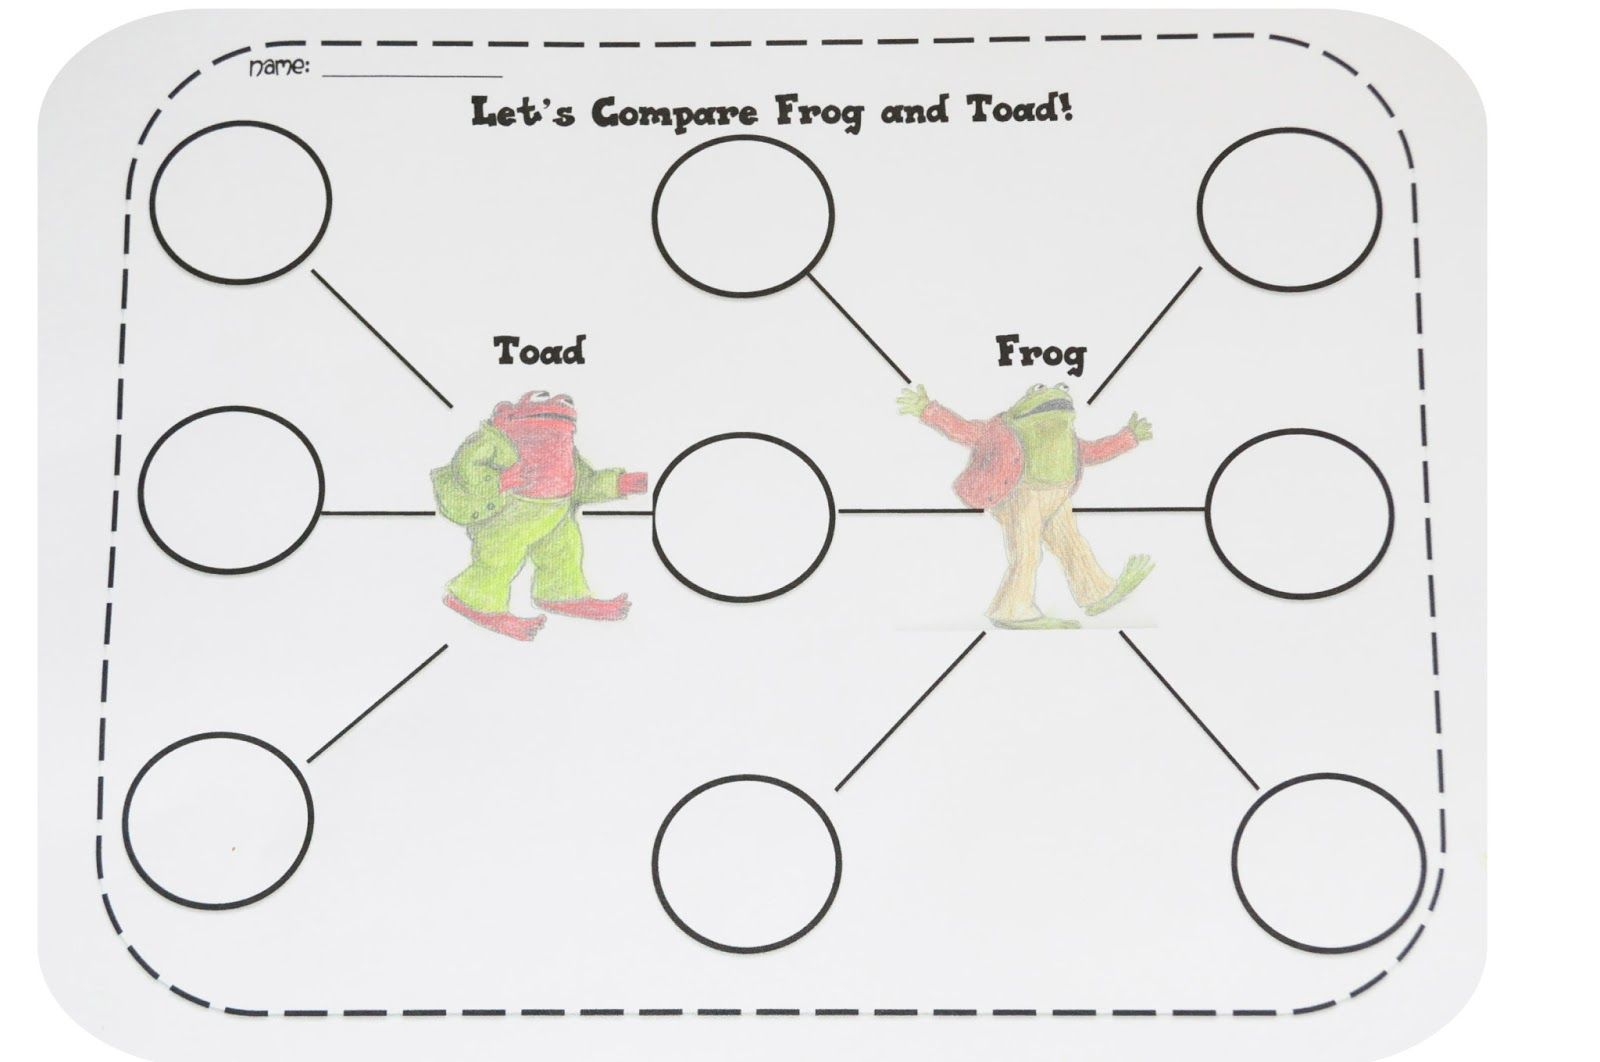 Free Worksheet Frog And Toad Together Worksheets 17 best images about compare and contrast on pinterest graphic organizers literacy fiction